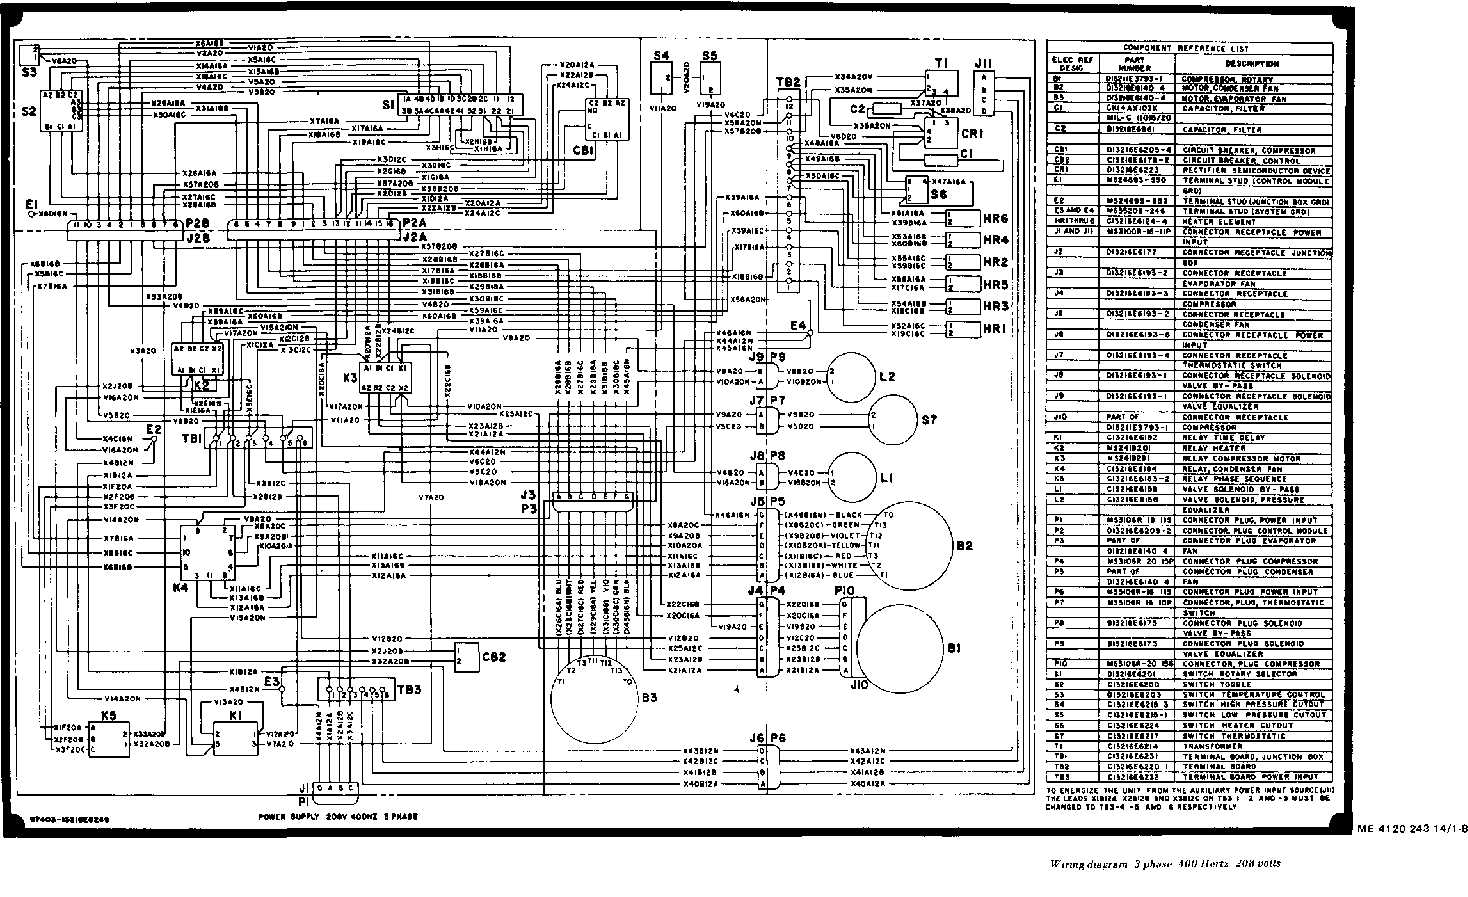 single phase 220 volt wiring diagram pioneer deh p400ub 208 volts diagrams get free